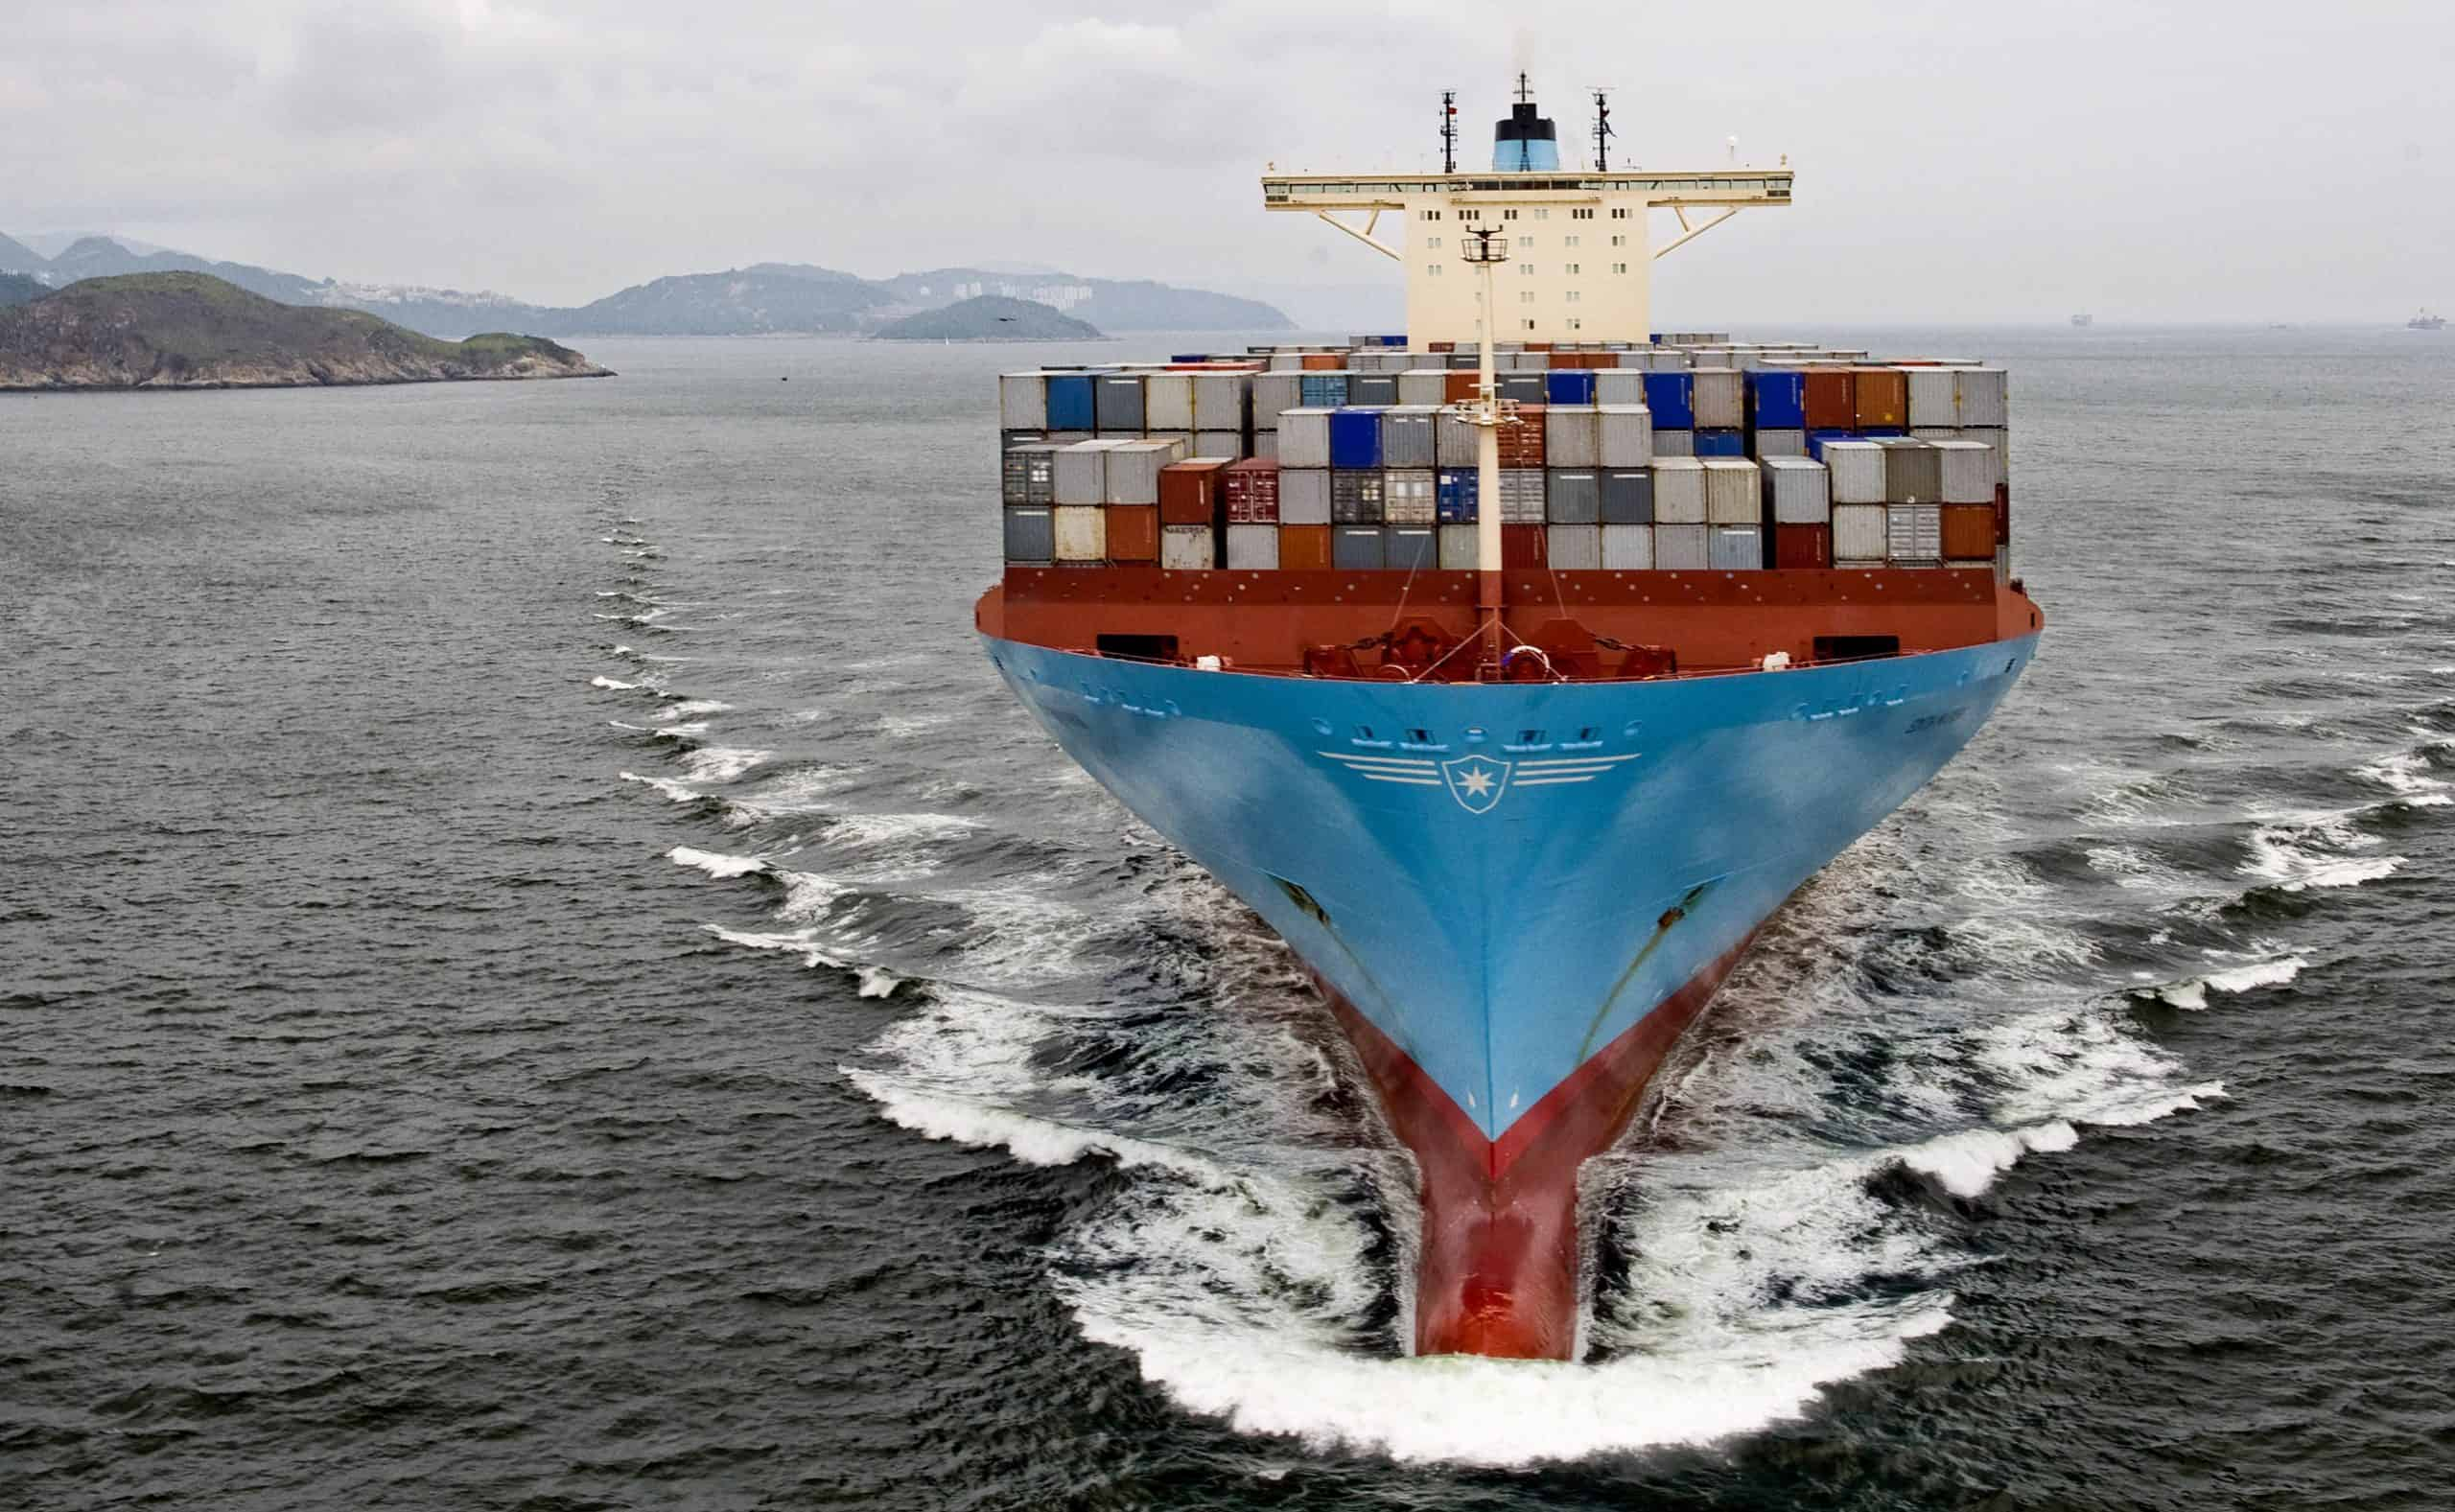 Ship and container reliability continues decline